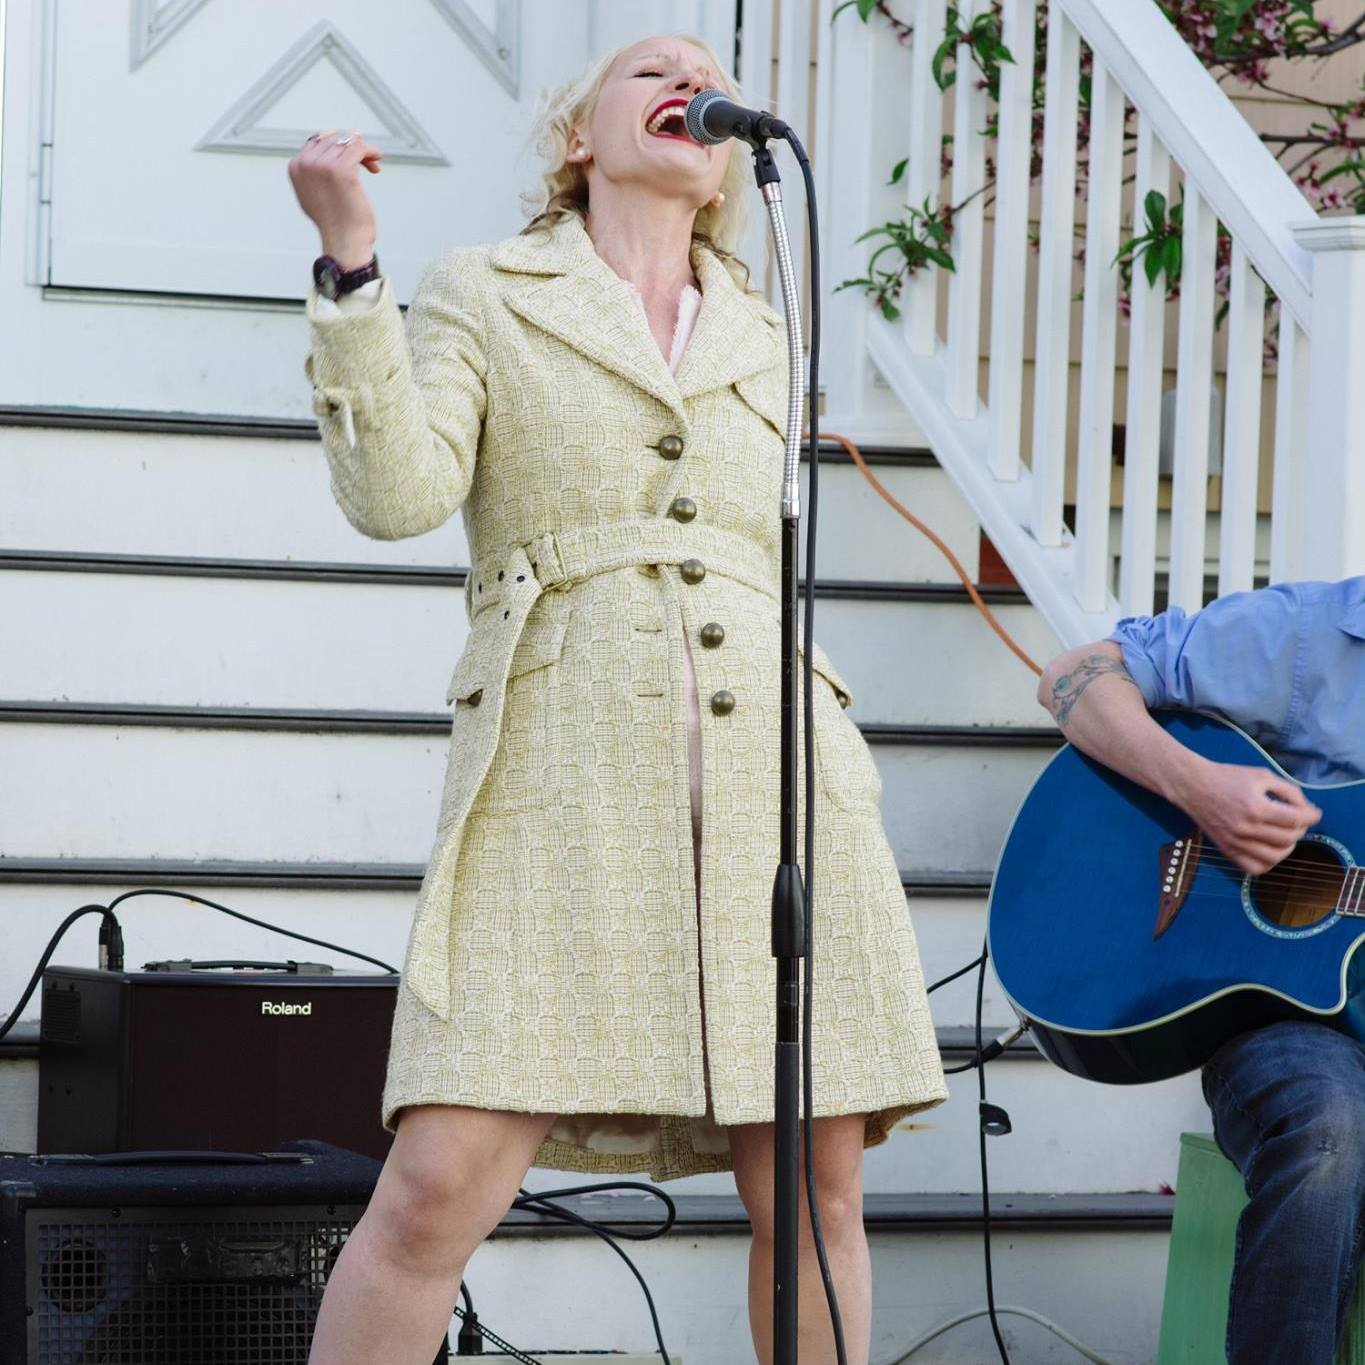 Somerville City Councilor-at-Large Kristen Strezo singing enthusiastically into a microphone at Somerville Porchfest 2018